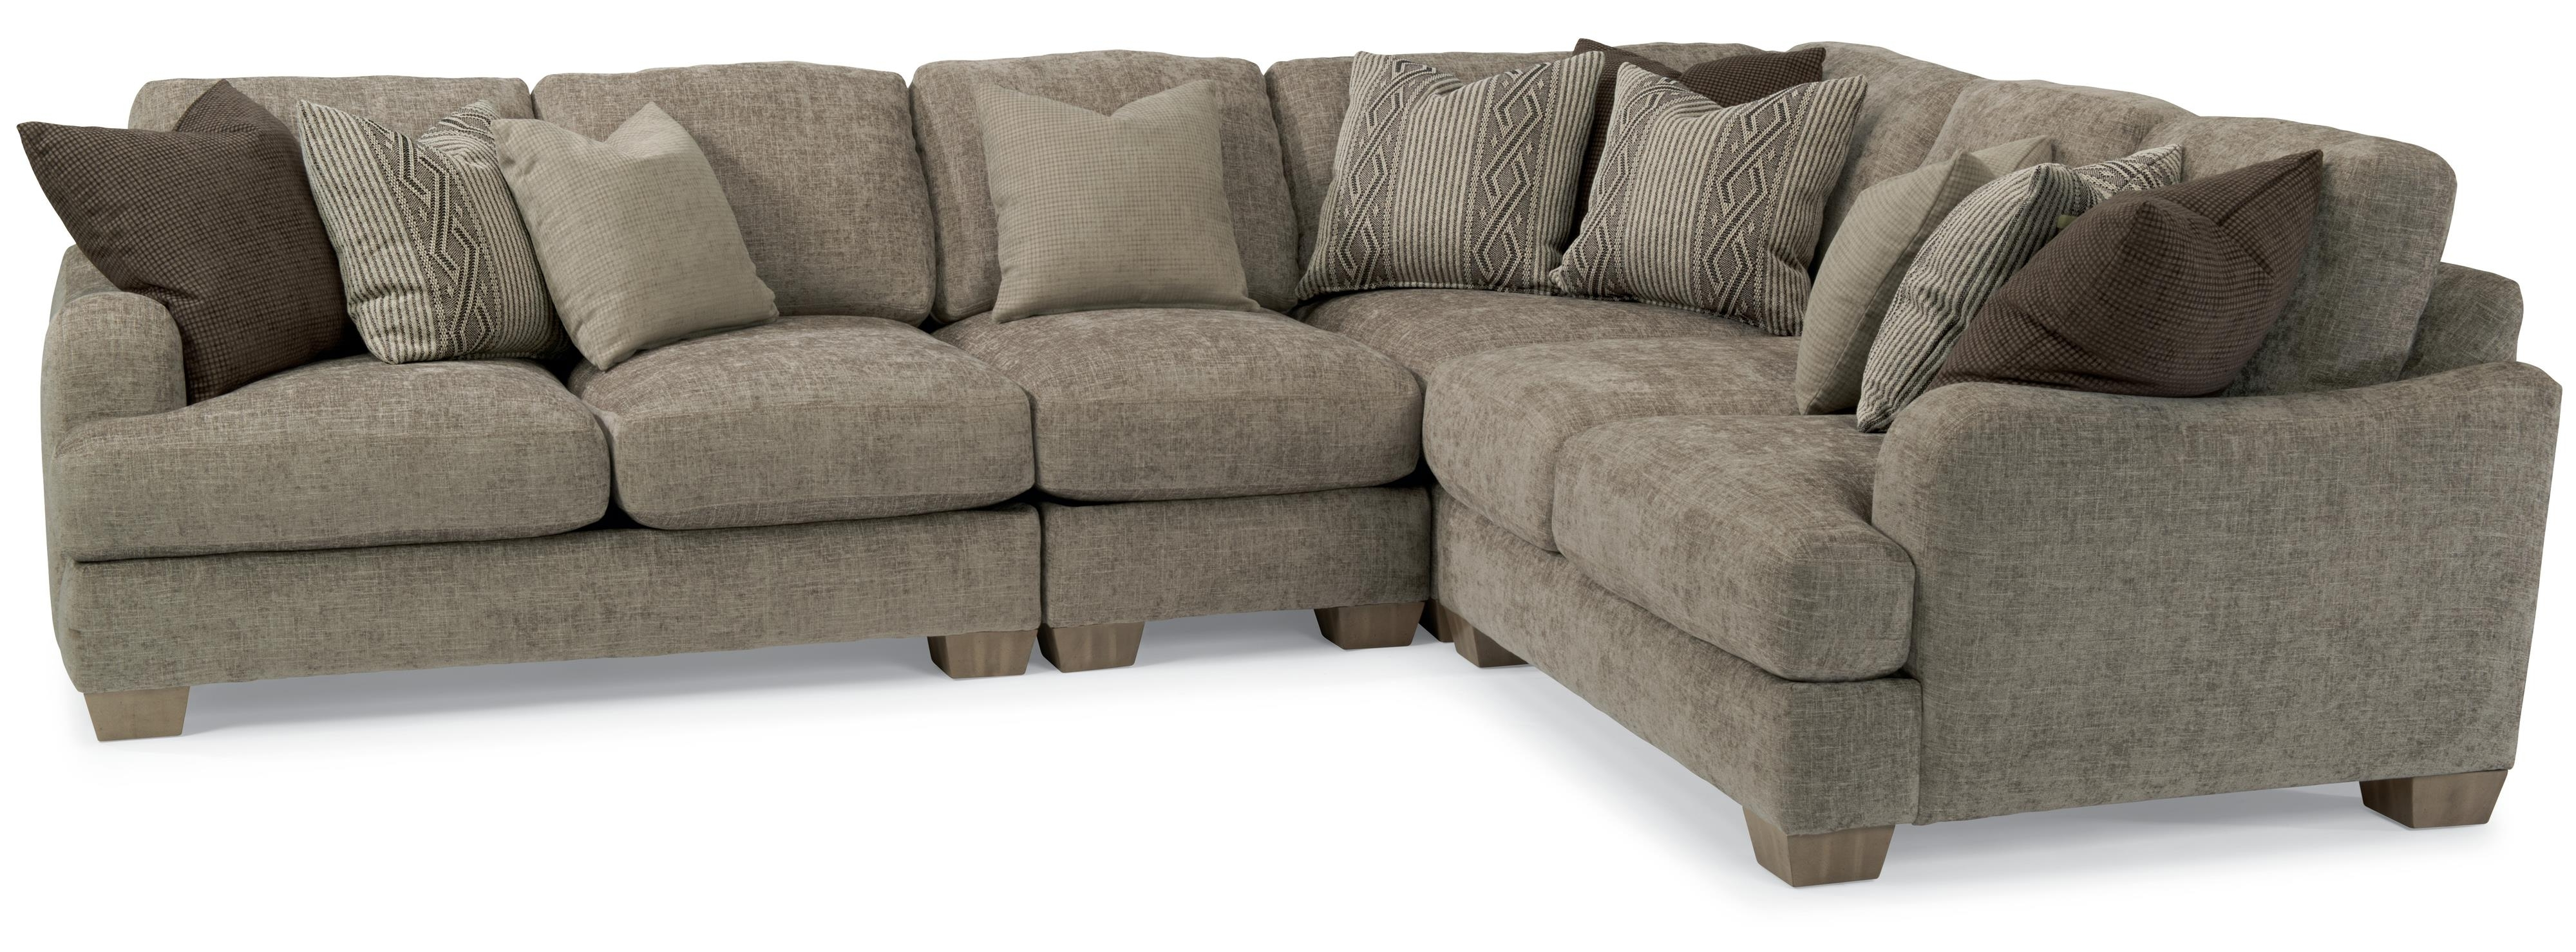 Newest Nova Scotia Sectional Sofas Within Vanessa Sectional Sofa With Loose Pillow Backflexsteel (View 3 of 15)